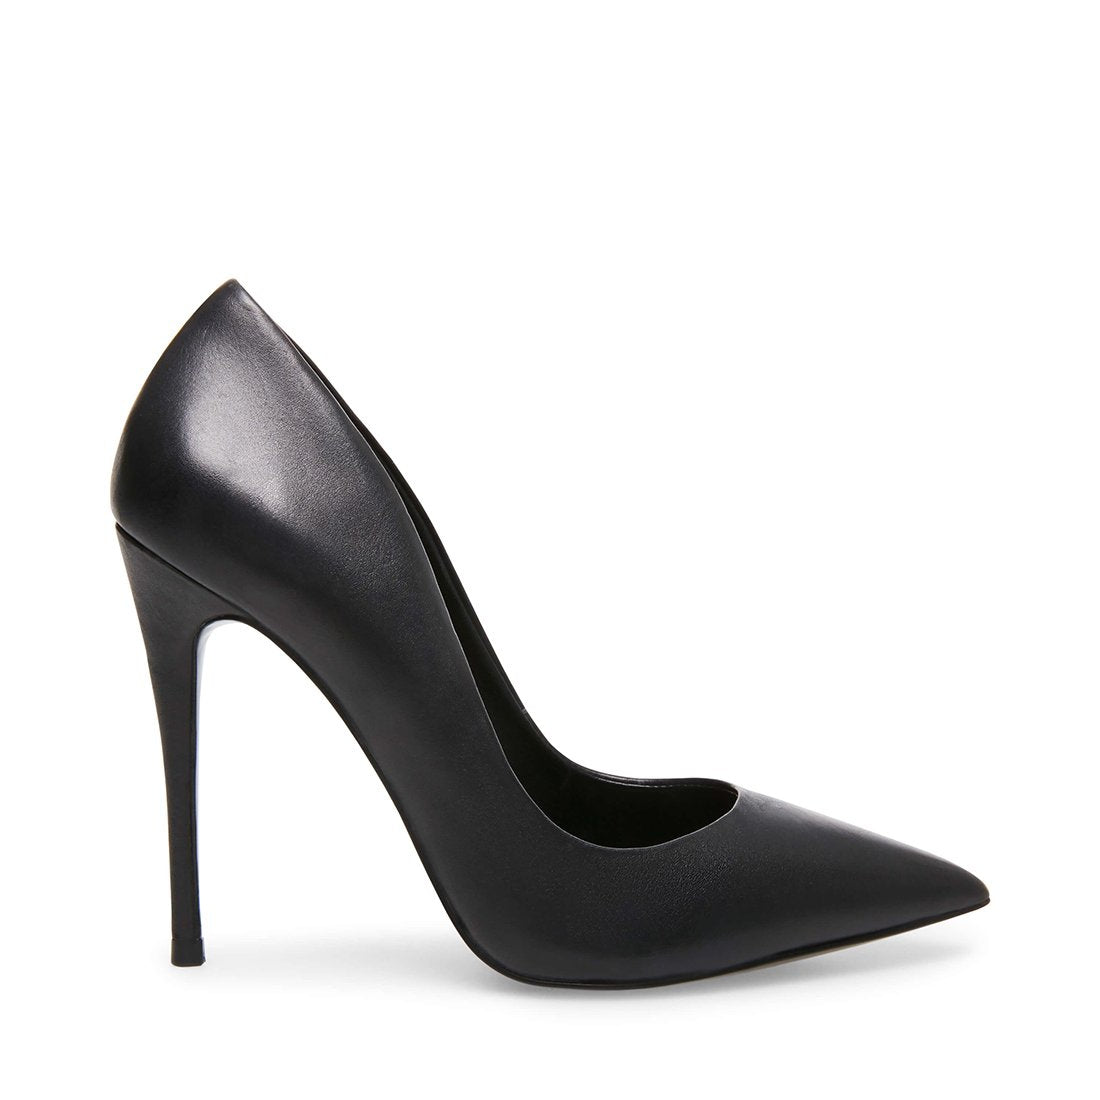 DAISIE BLACK LEATHER - Steve Madden